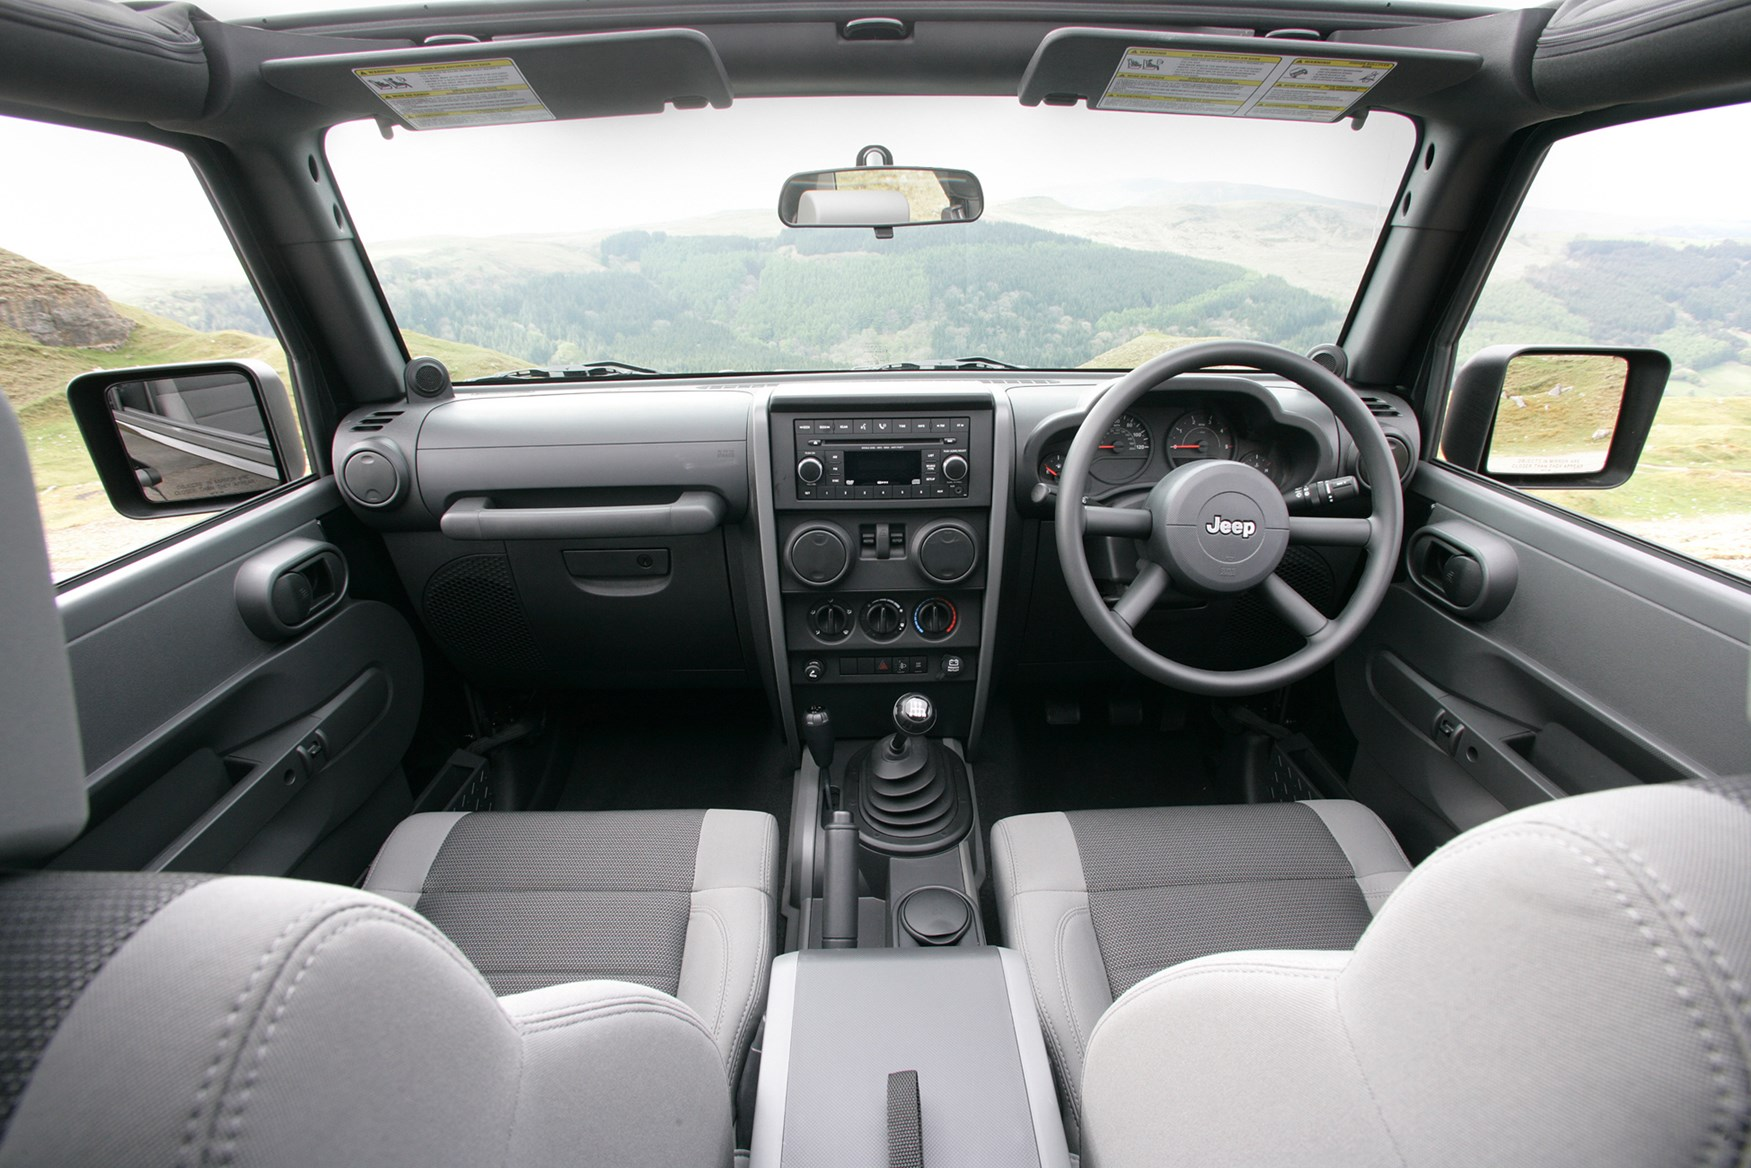 Jeep Wrangler Hardtop Review 2007